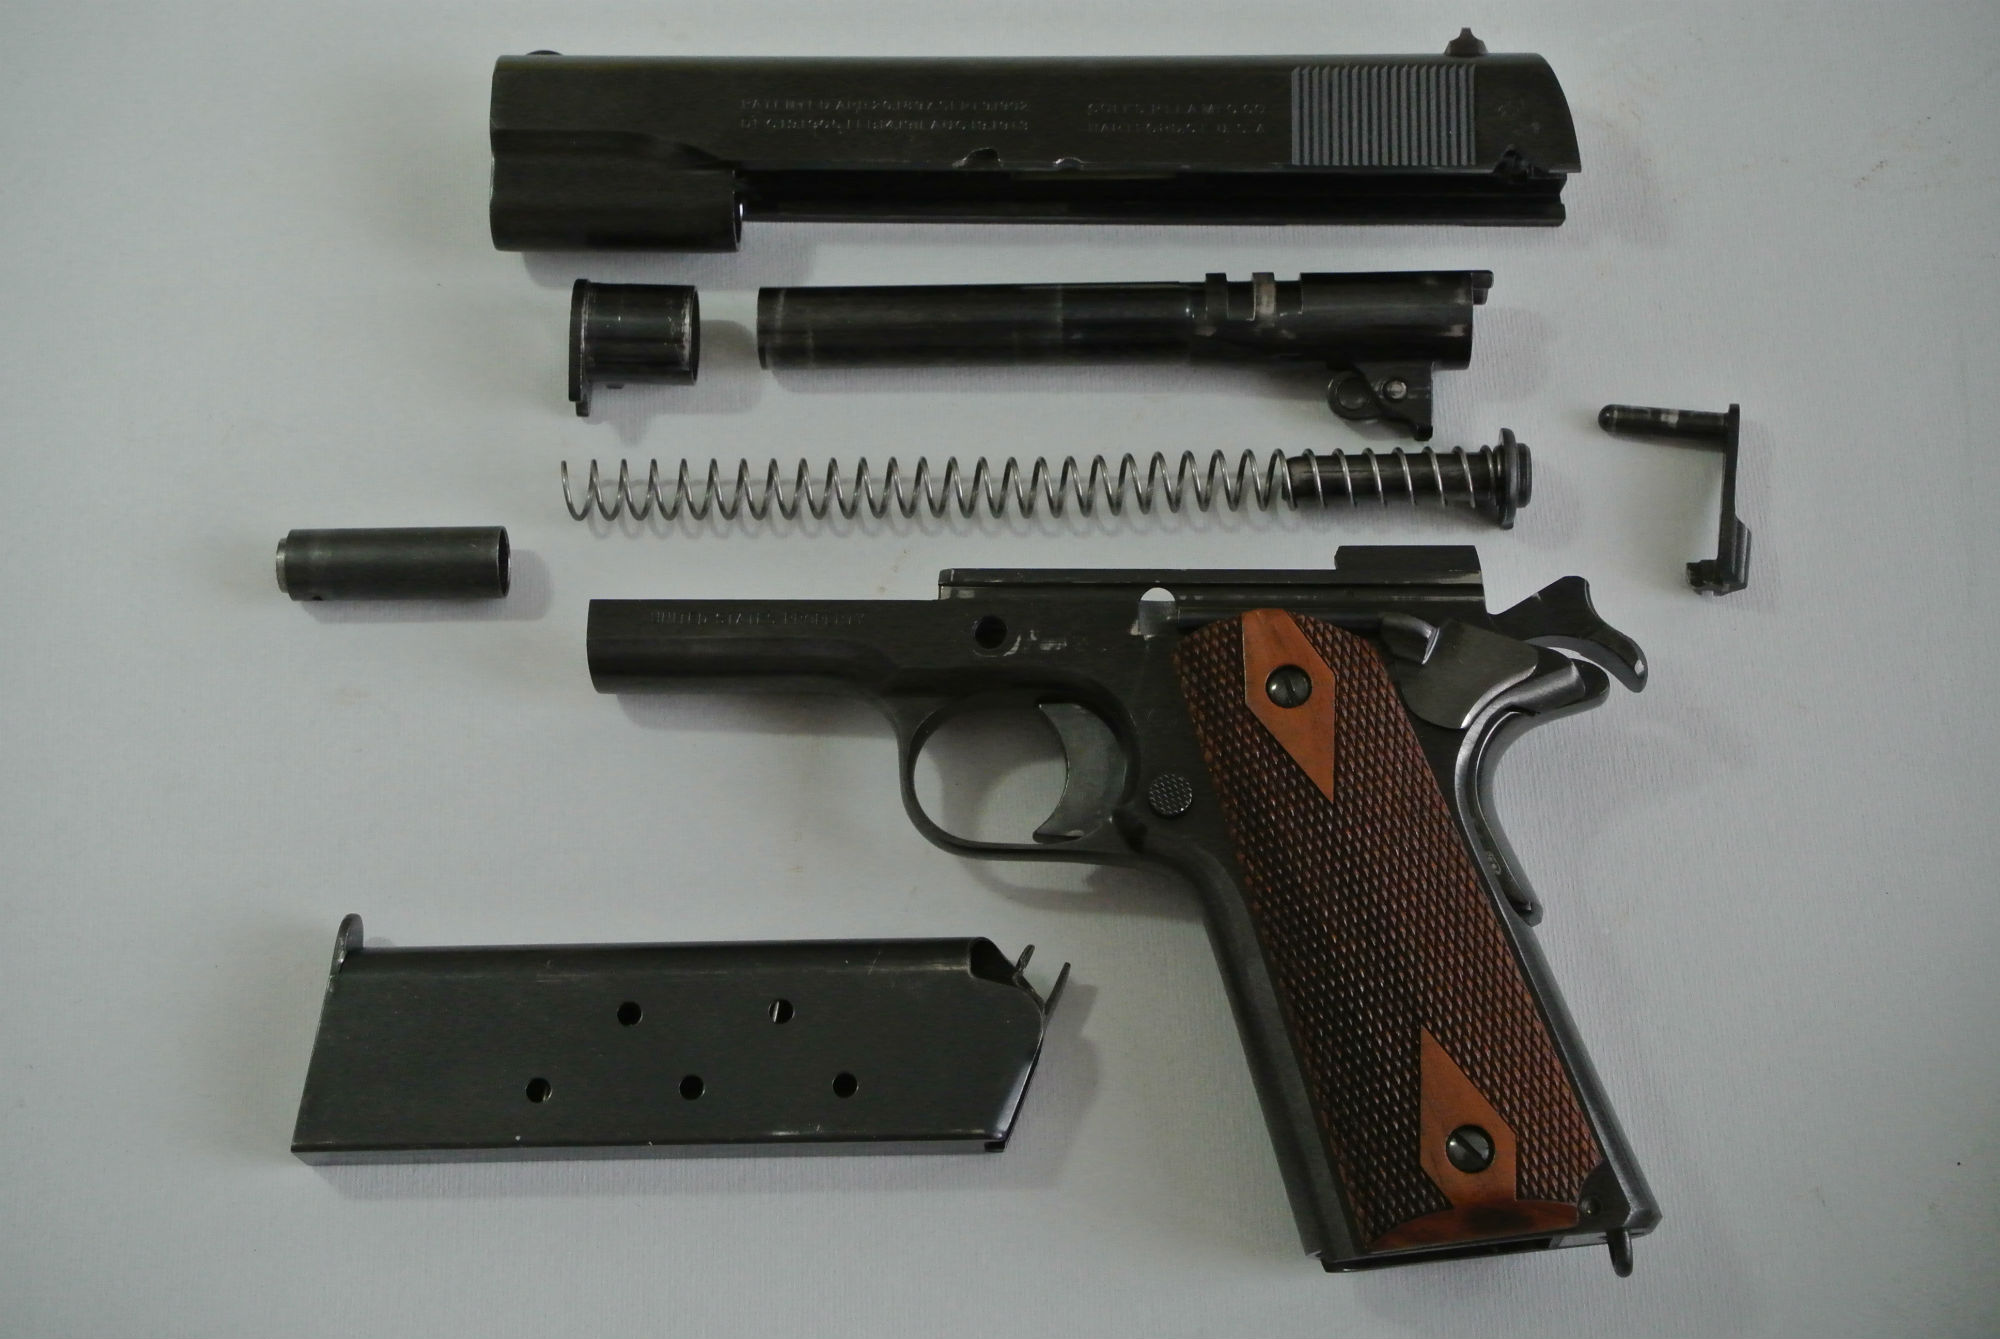 The WW1 Colt 1911 field-stripped